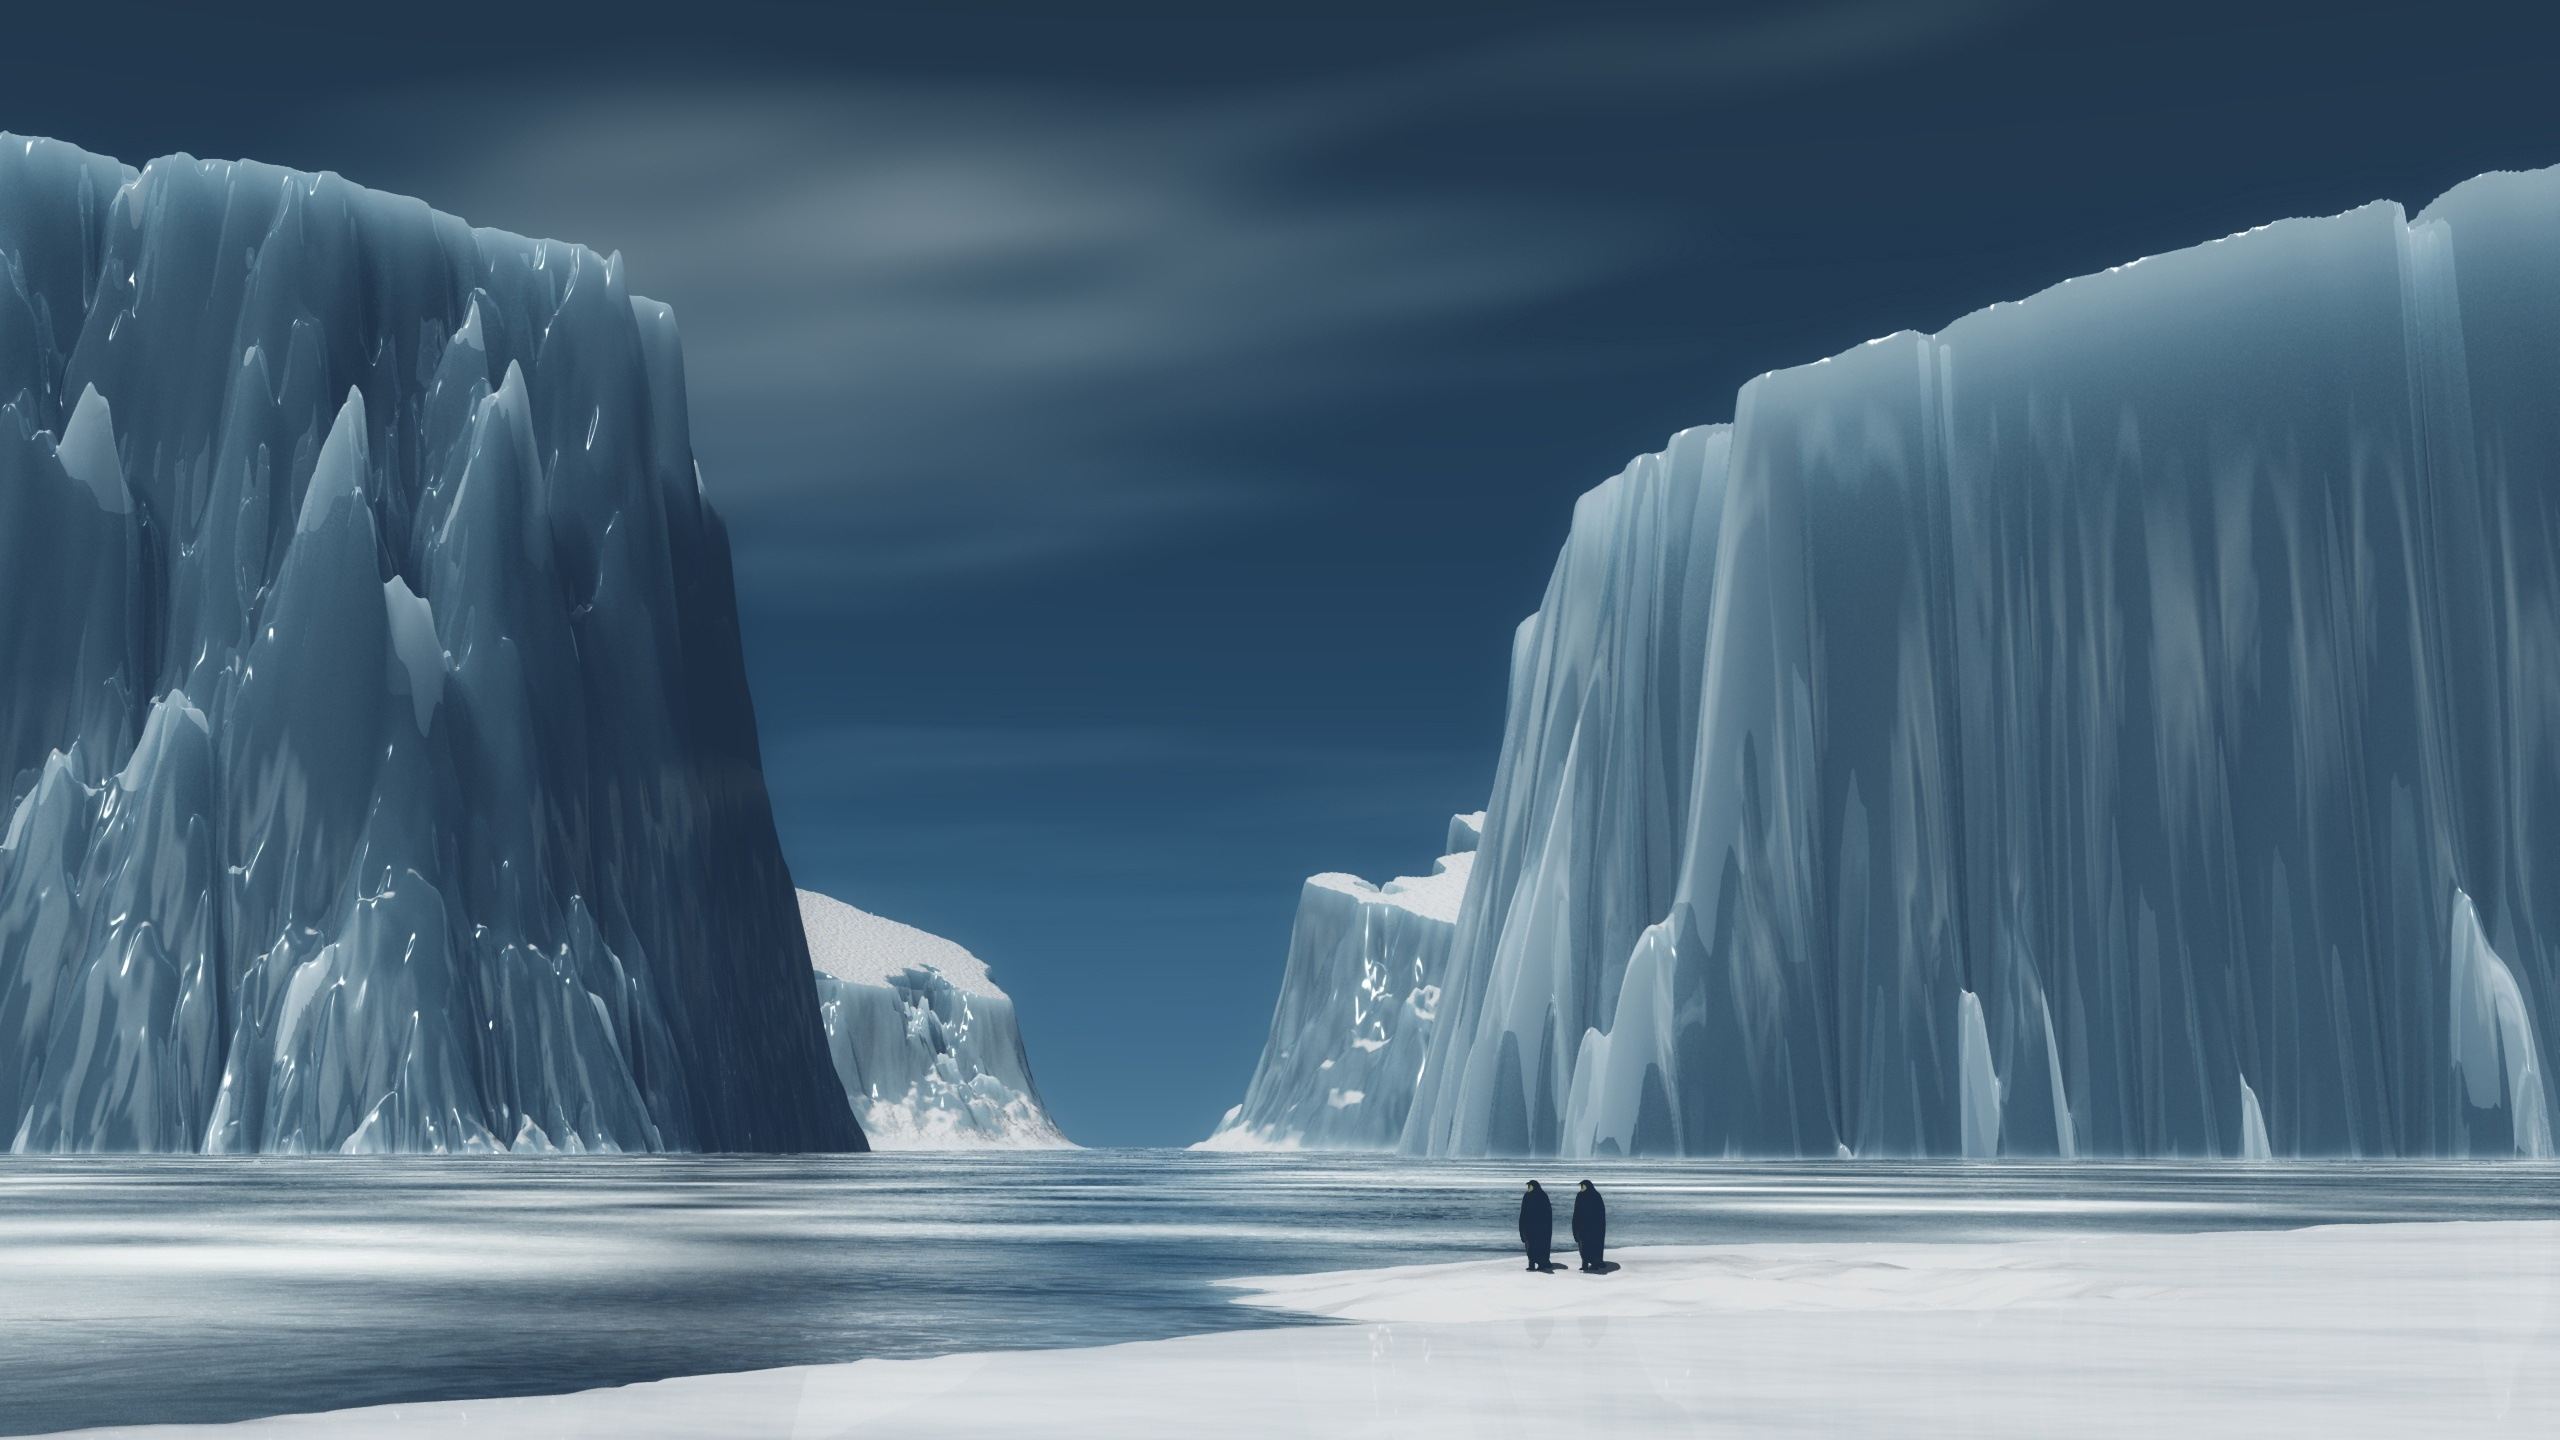 iceberg desktop wallpapers